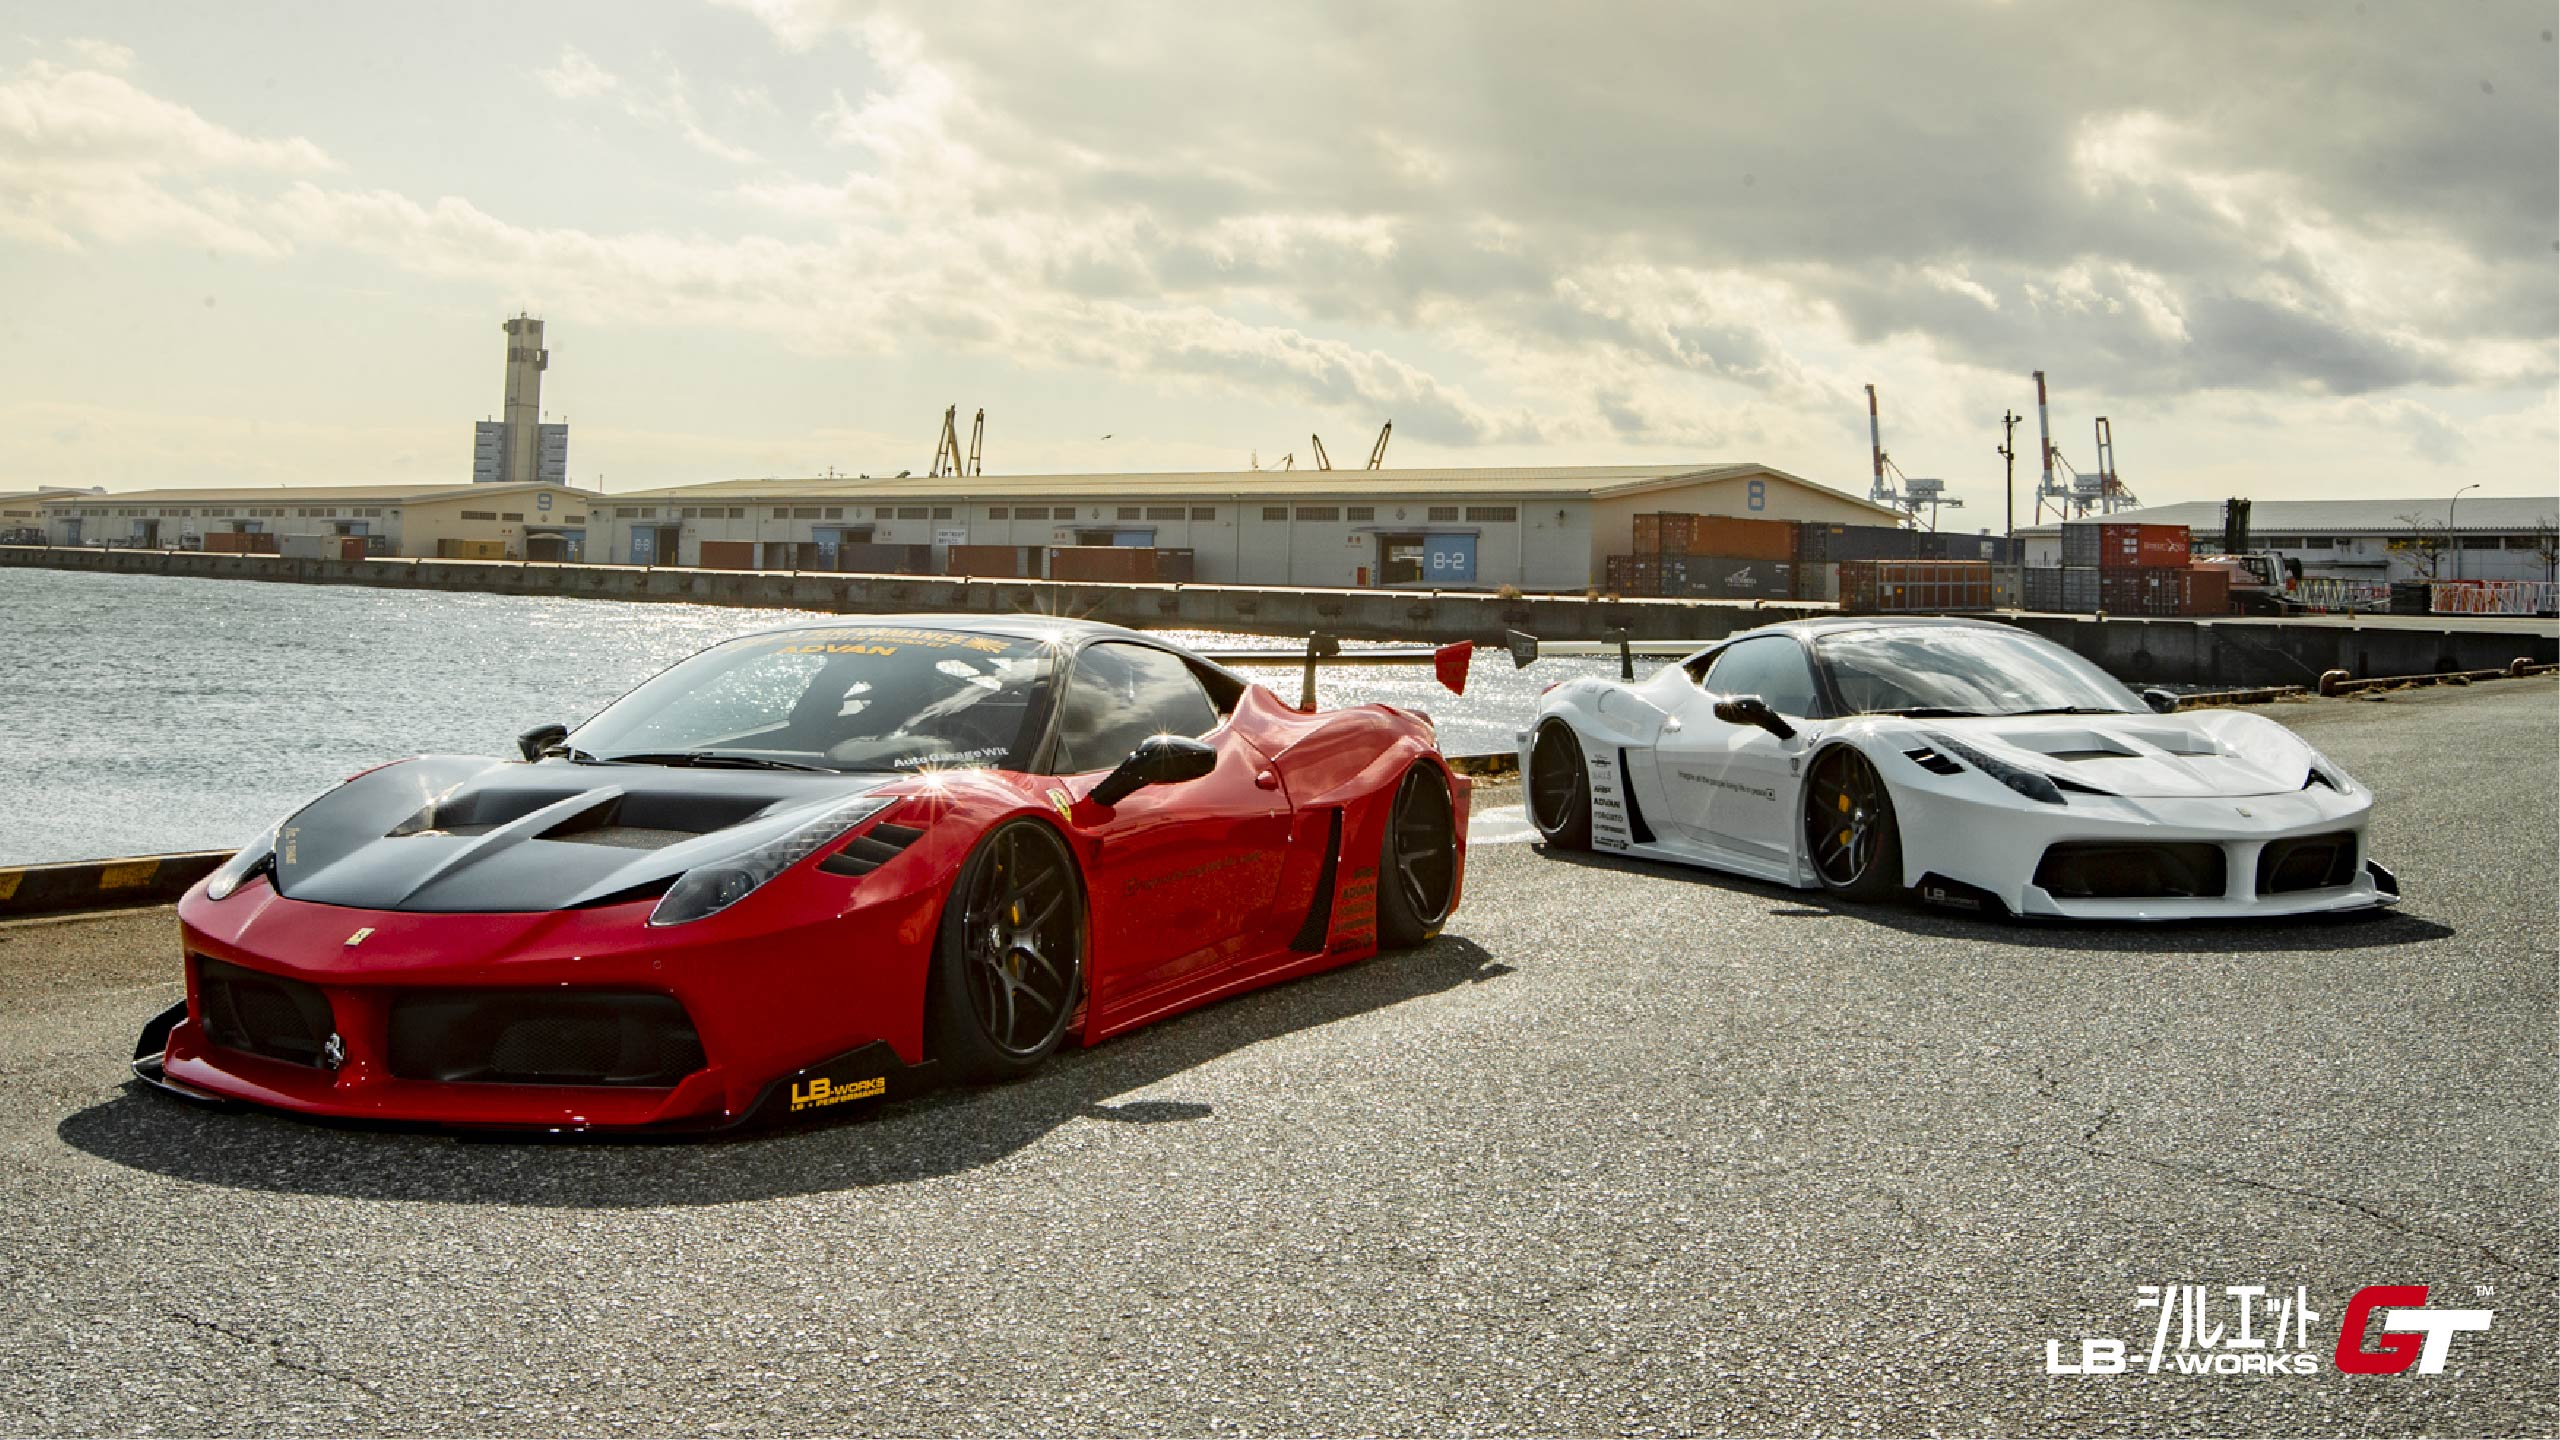 458gt_16-50 LB-Silhouette WORKS 458 GT